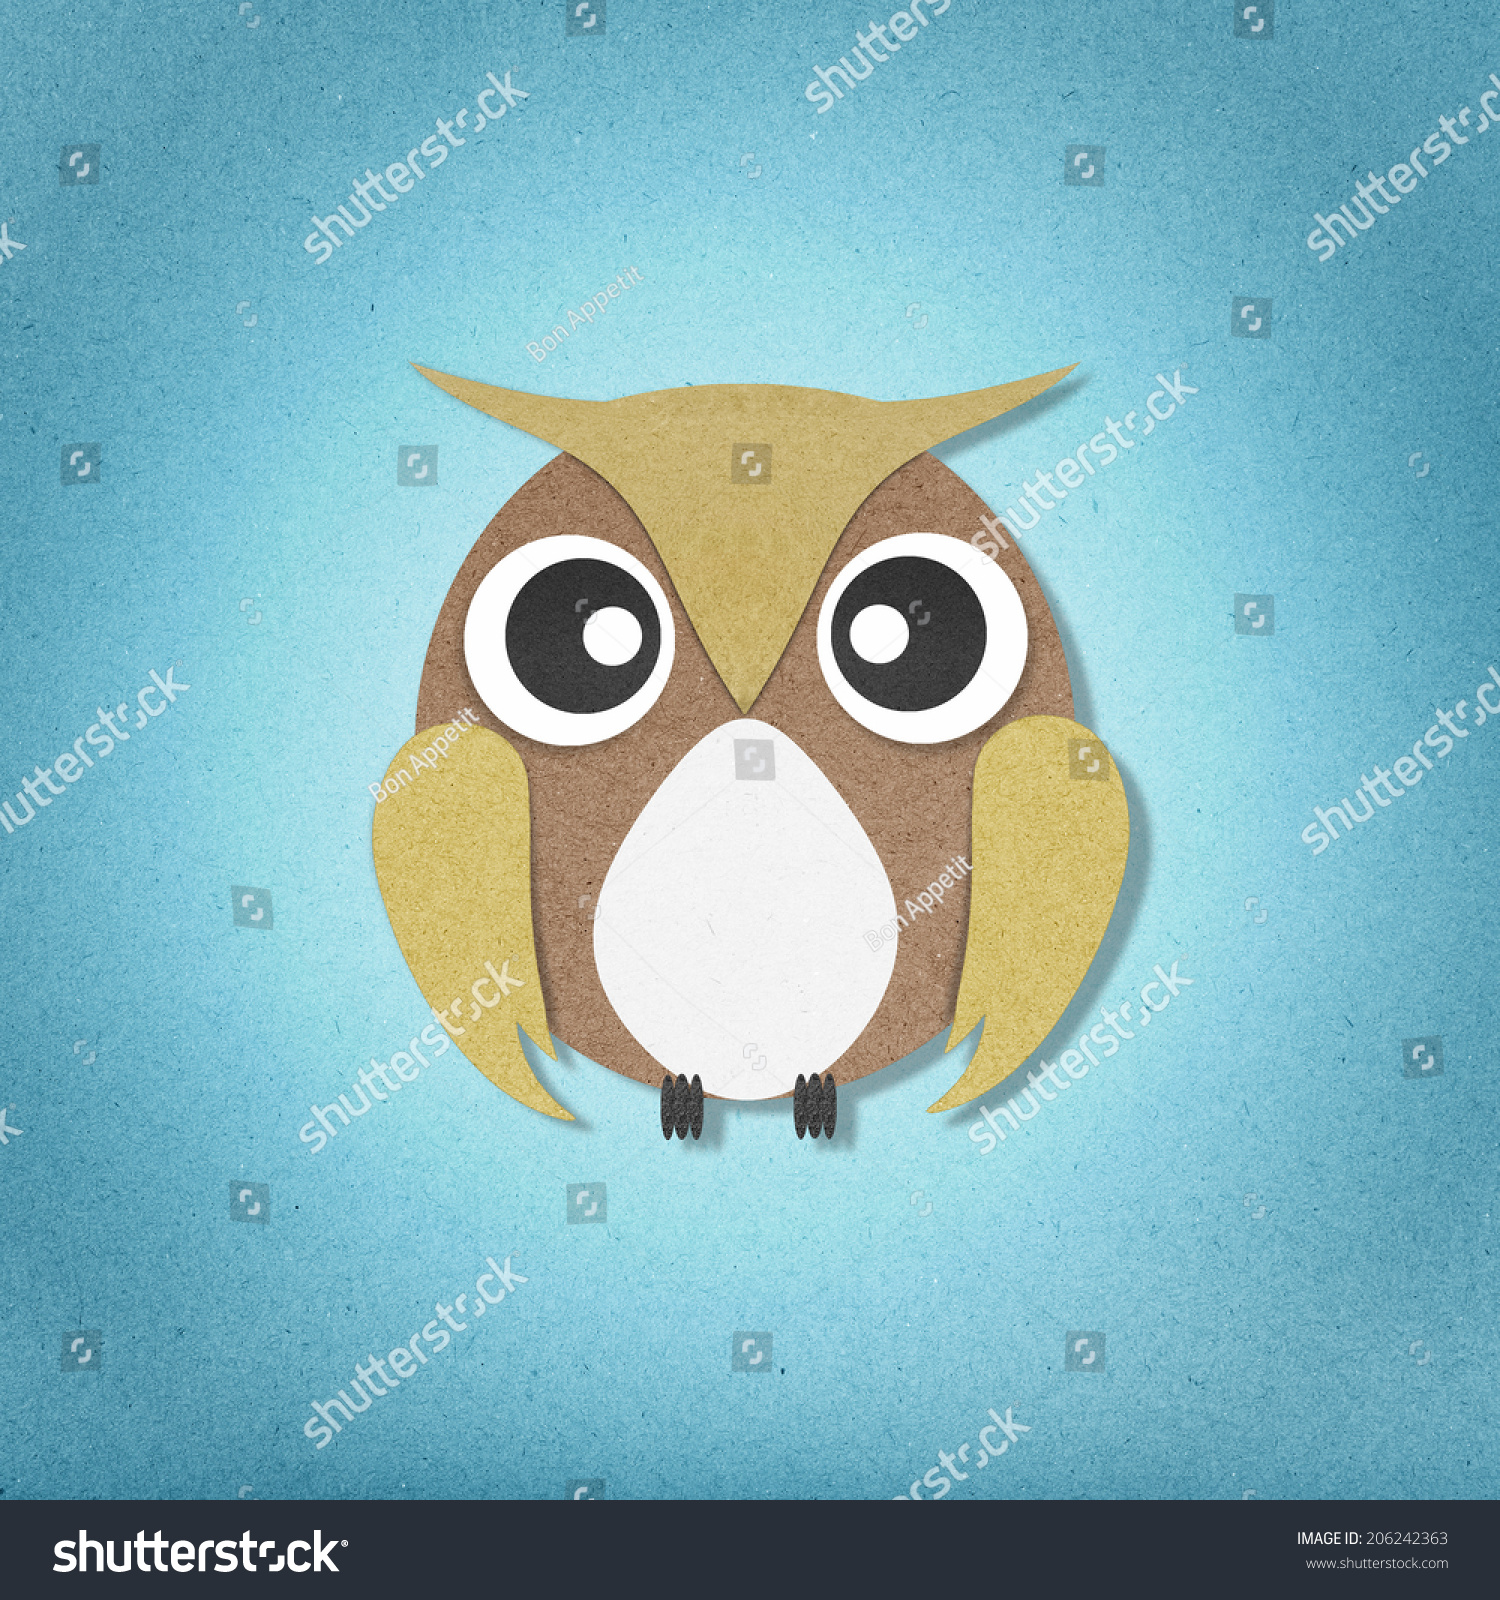 Owl paper craft on paper background stock illustration 206242363 owl paper craft on paper background jeuxipadfo Choice Image